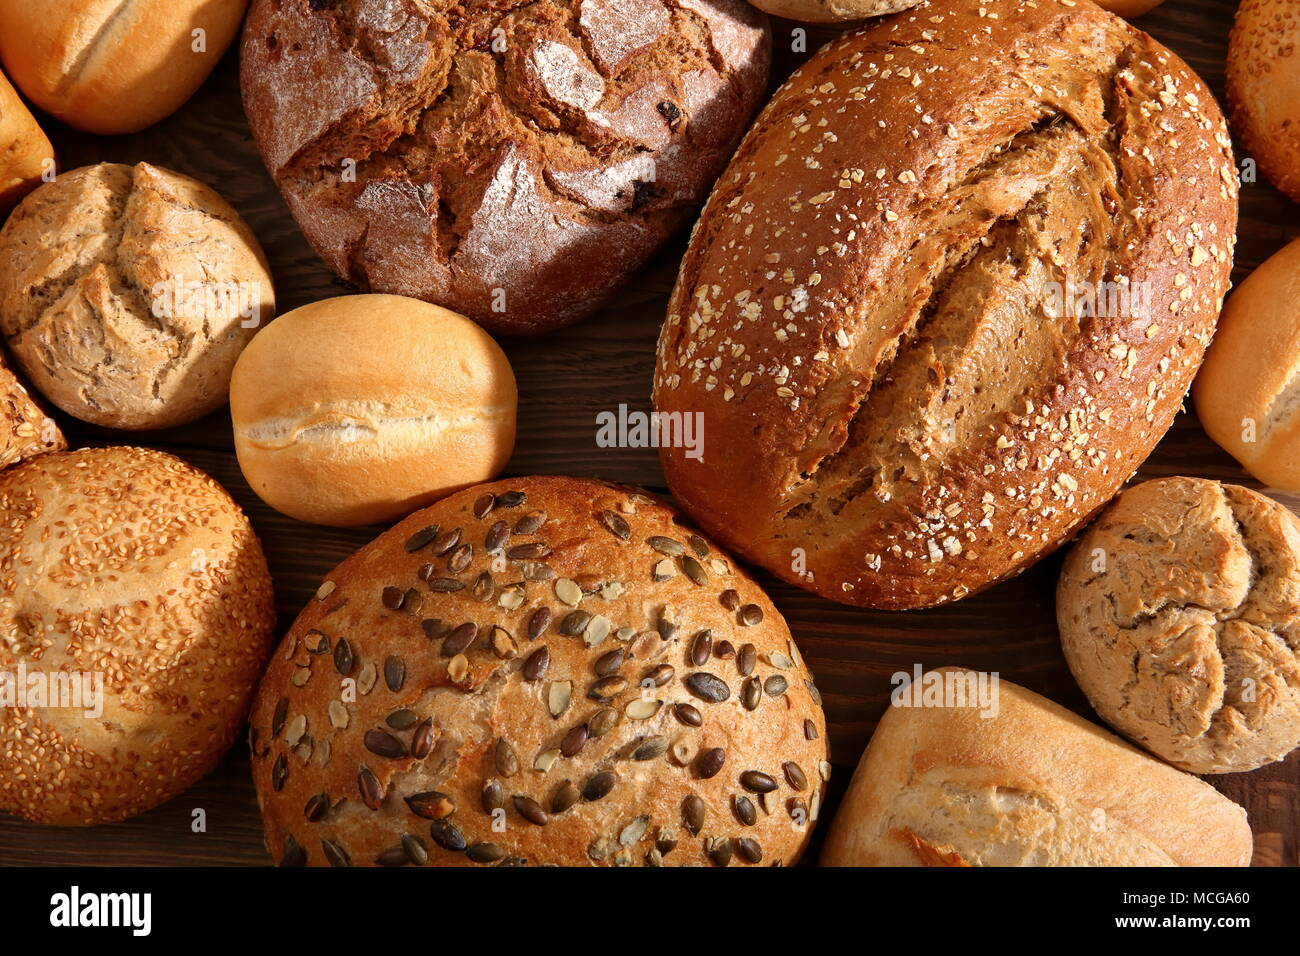 Bread and rolls are many kinds of bread, flavors and shapes that can be found in bakery and grocery stores not only in Poland but all over the world. - Stock Image